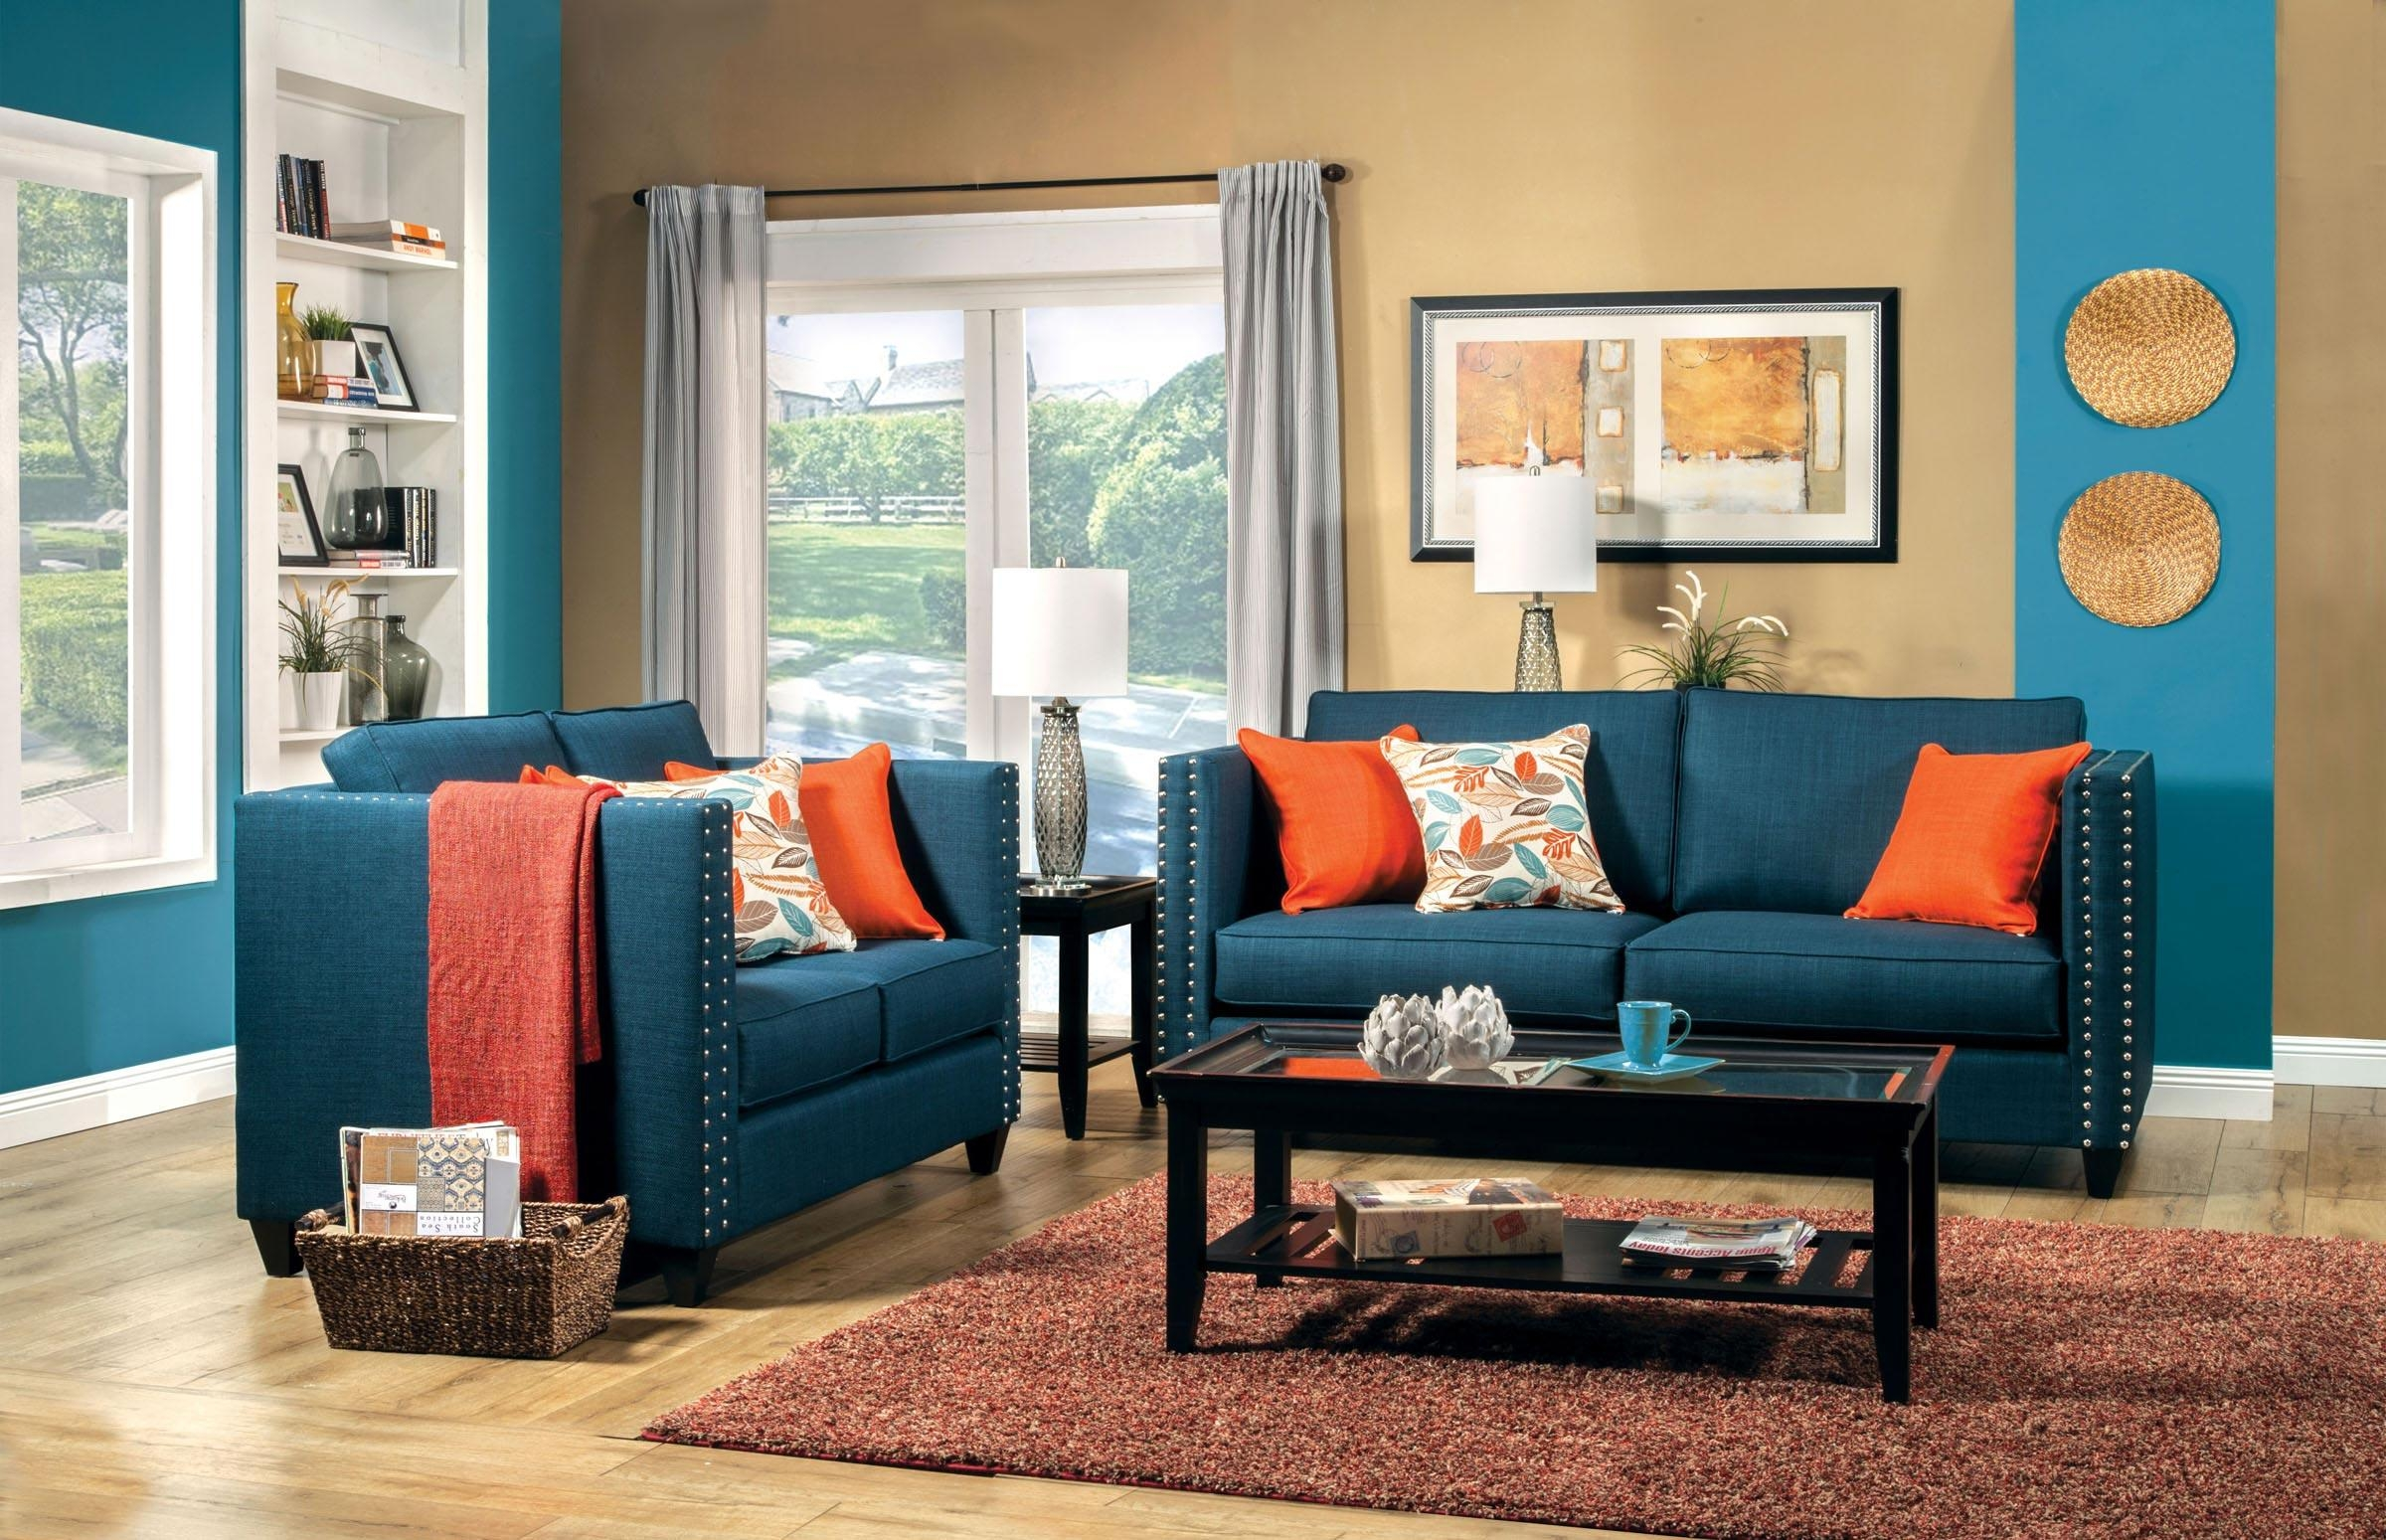 Sofas Center : Sensational Blue Sofa Set Images Concept Cobalt Throughout Blue Jean Sofas (View 13 of 20)